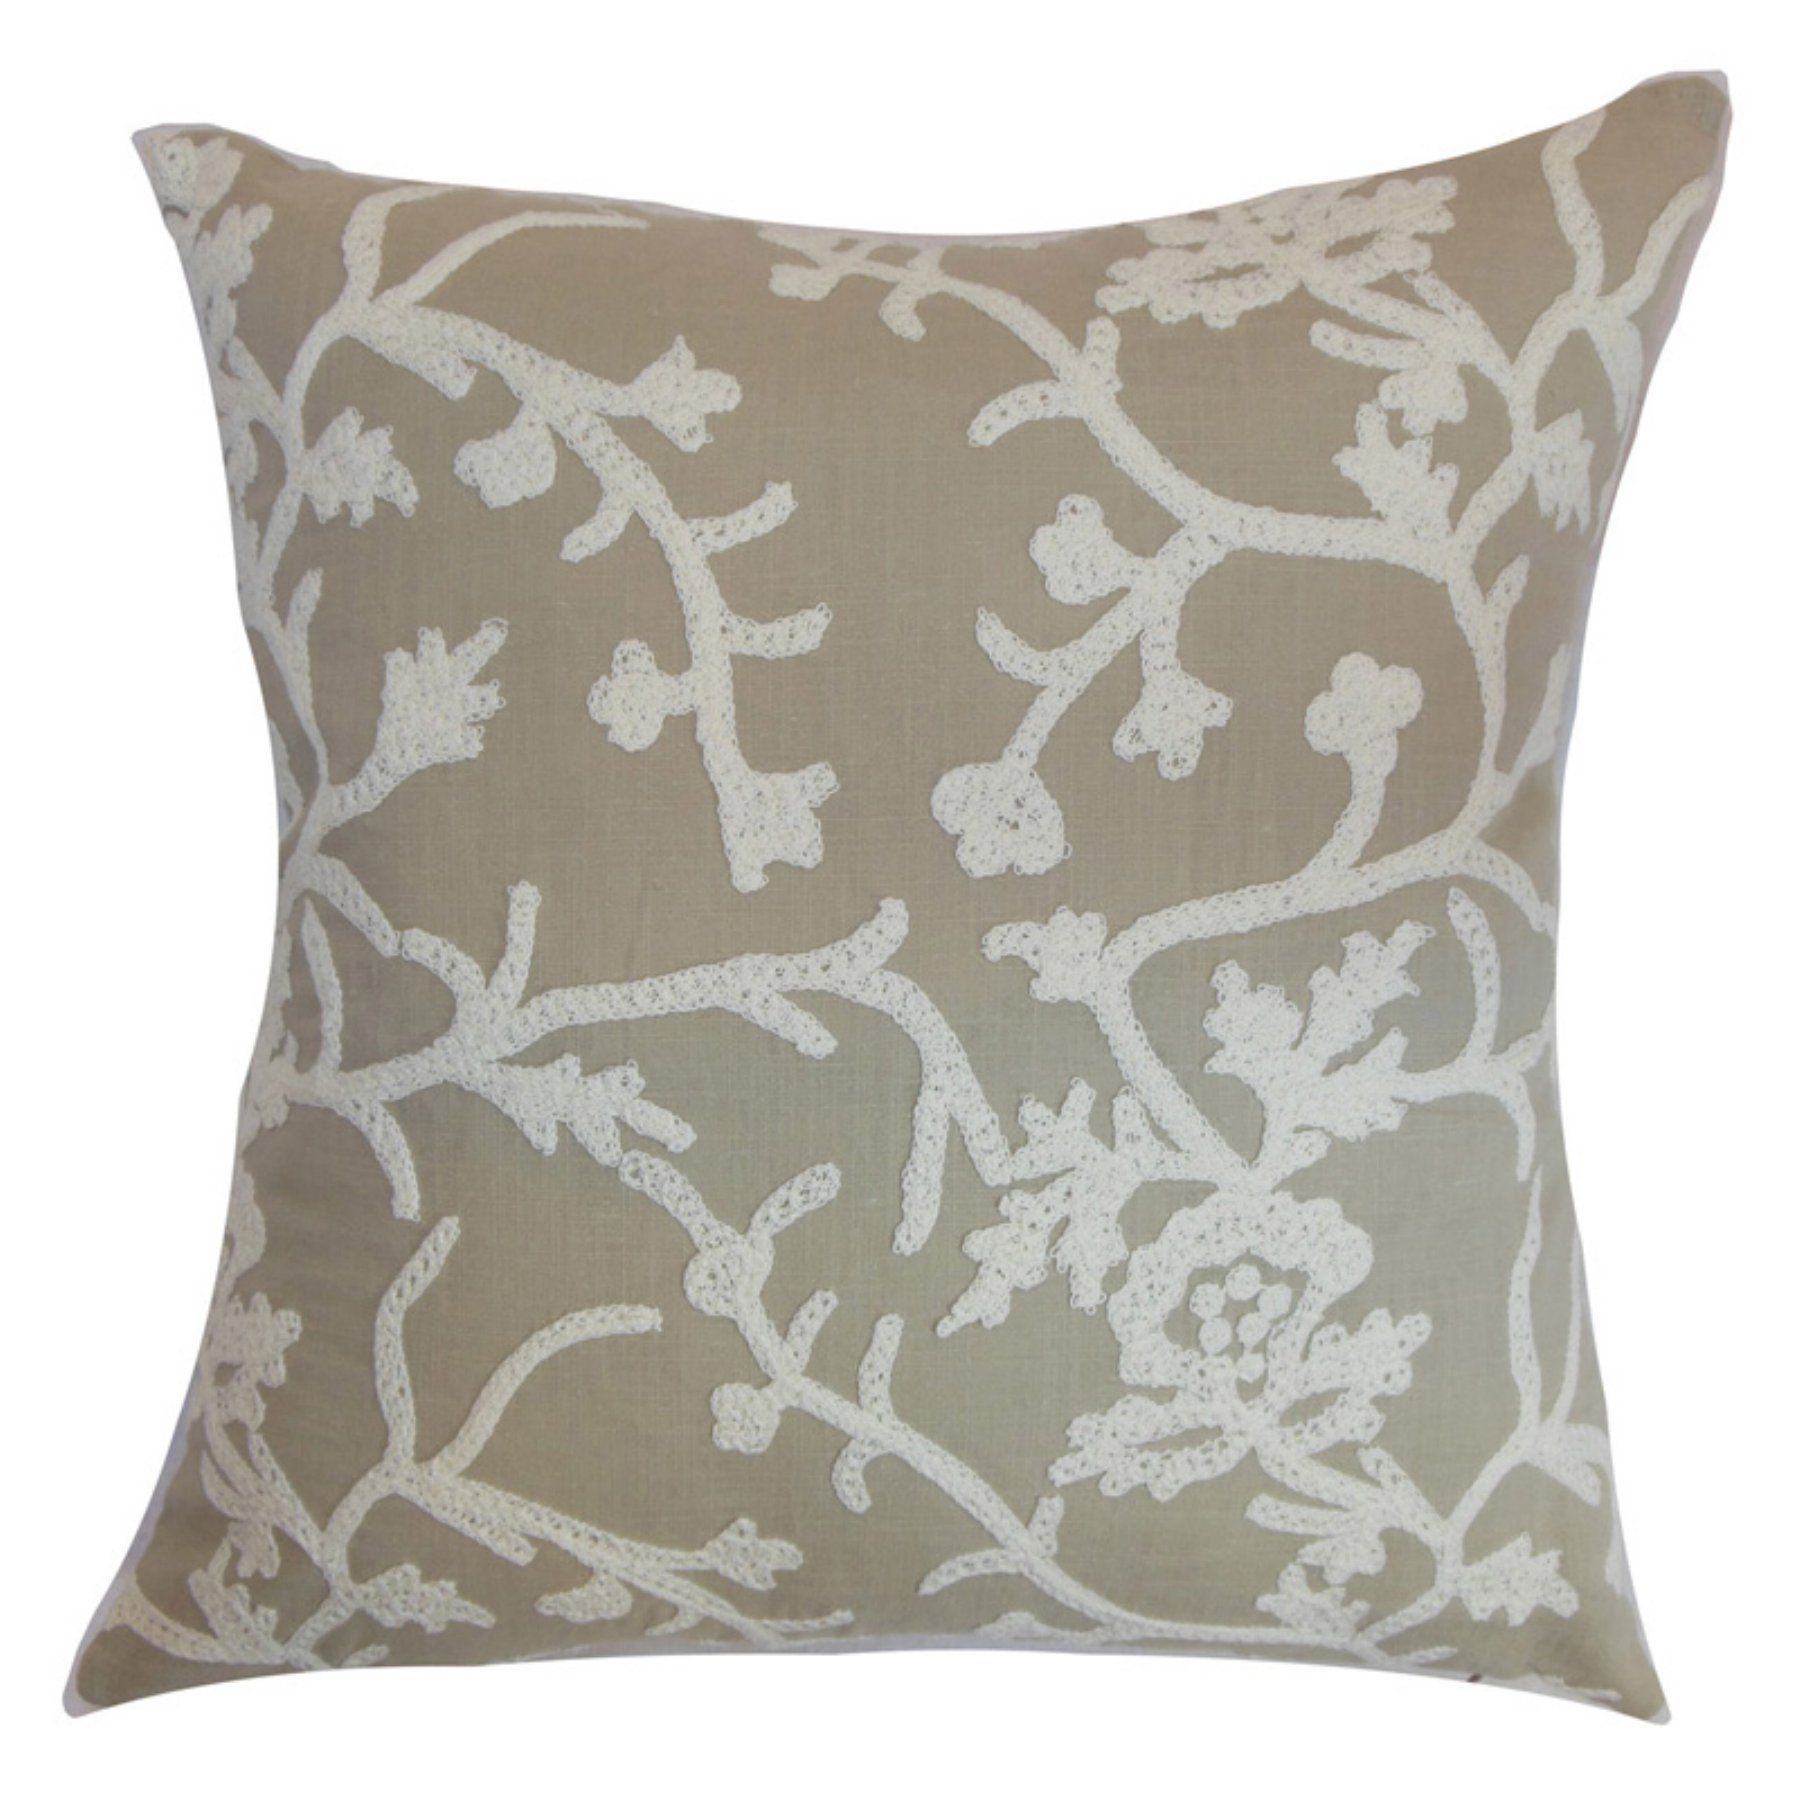 The Pillow Collection Paksane Floral Pillow Pumice